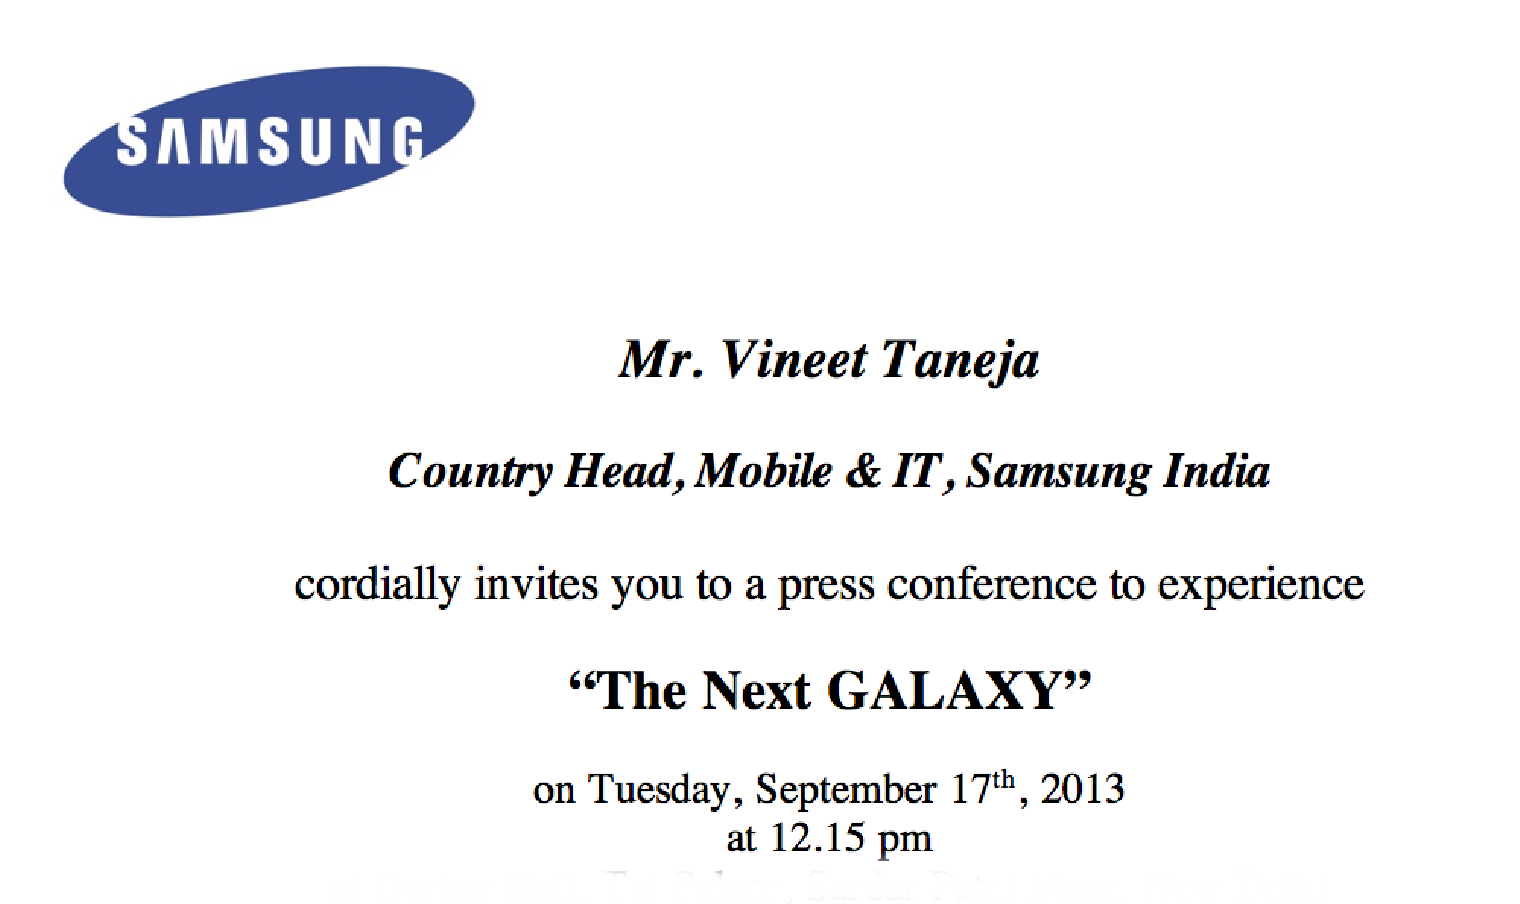 Samsung Galaxy Note 3 and Galaxy Gear India launch confirmed 17th – Launching Invitation Card